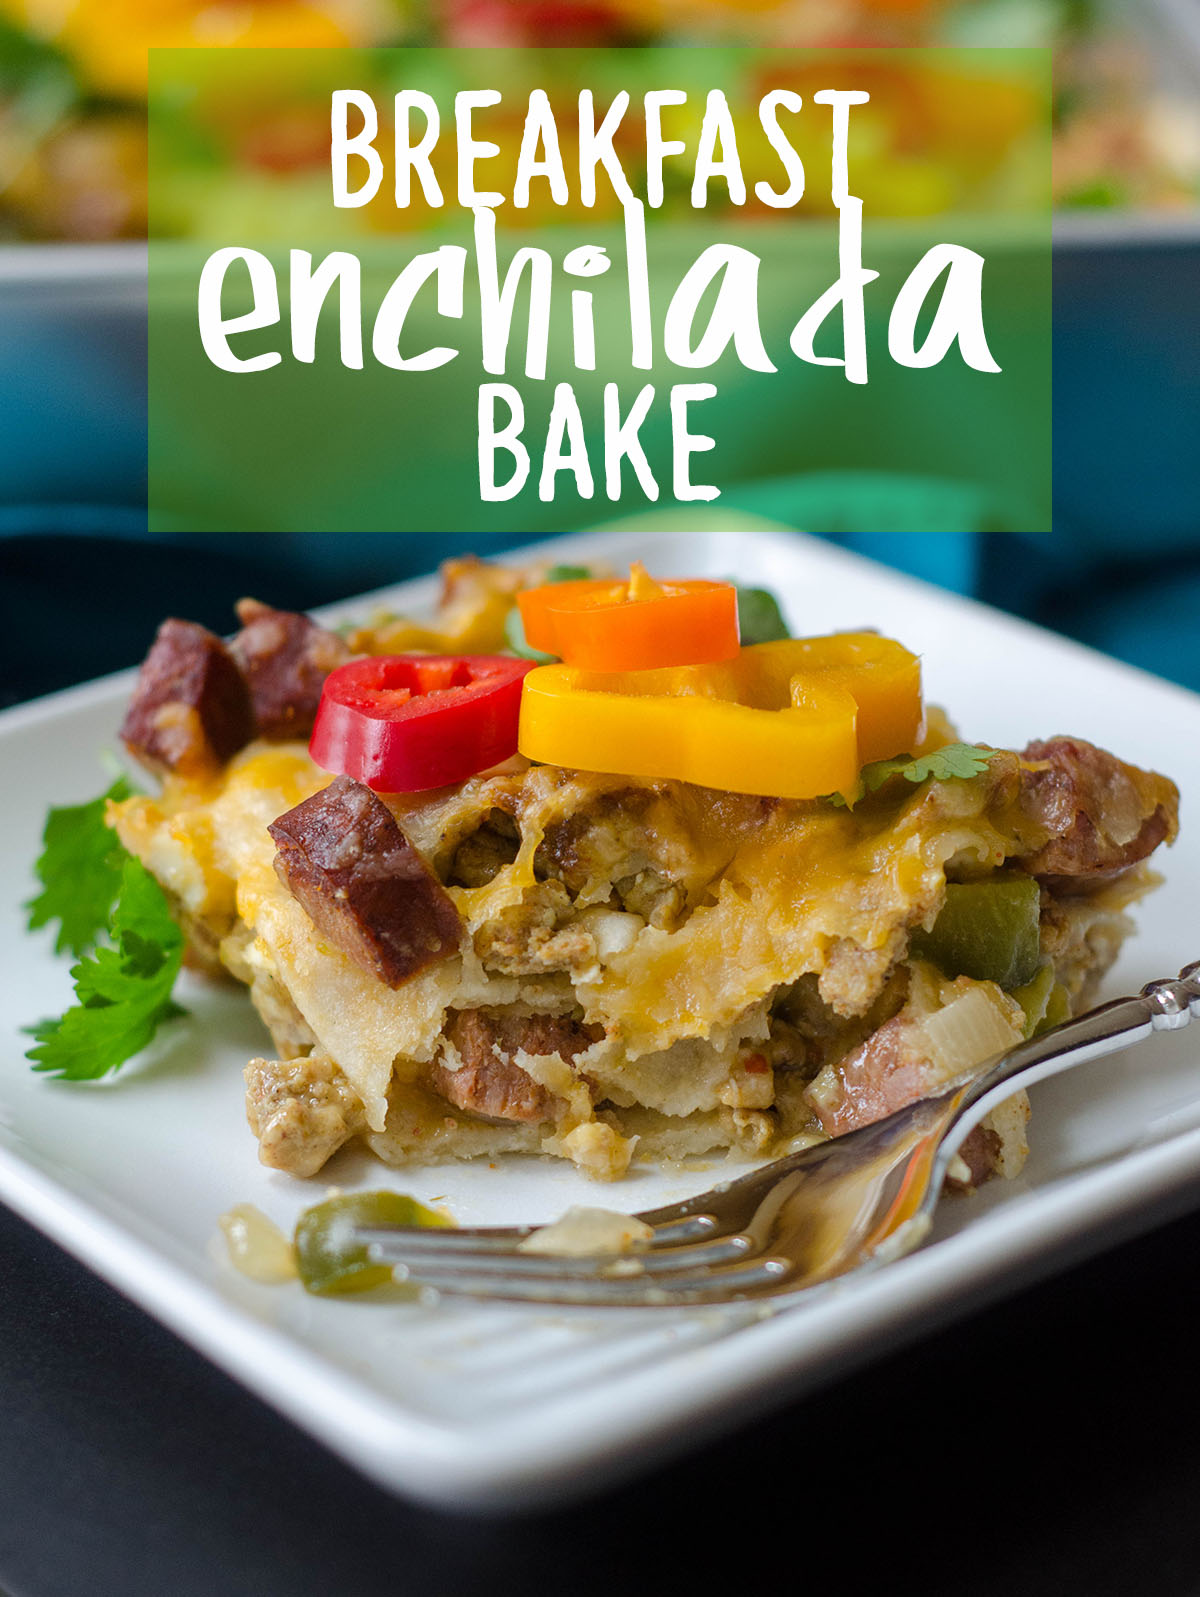 Enchilada Breakfast Bake: Seasoned scrambled eggs and vegetables combined with spicy chorizo, and layered between corn tortillas and enchilada sauce for an easy and flavorful breakfast dish.